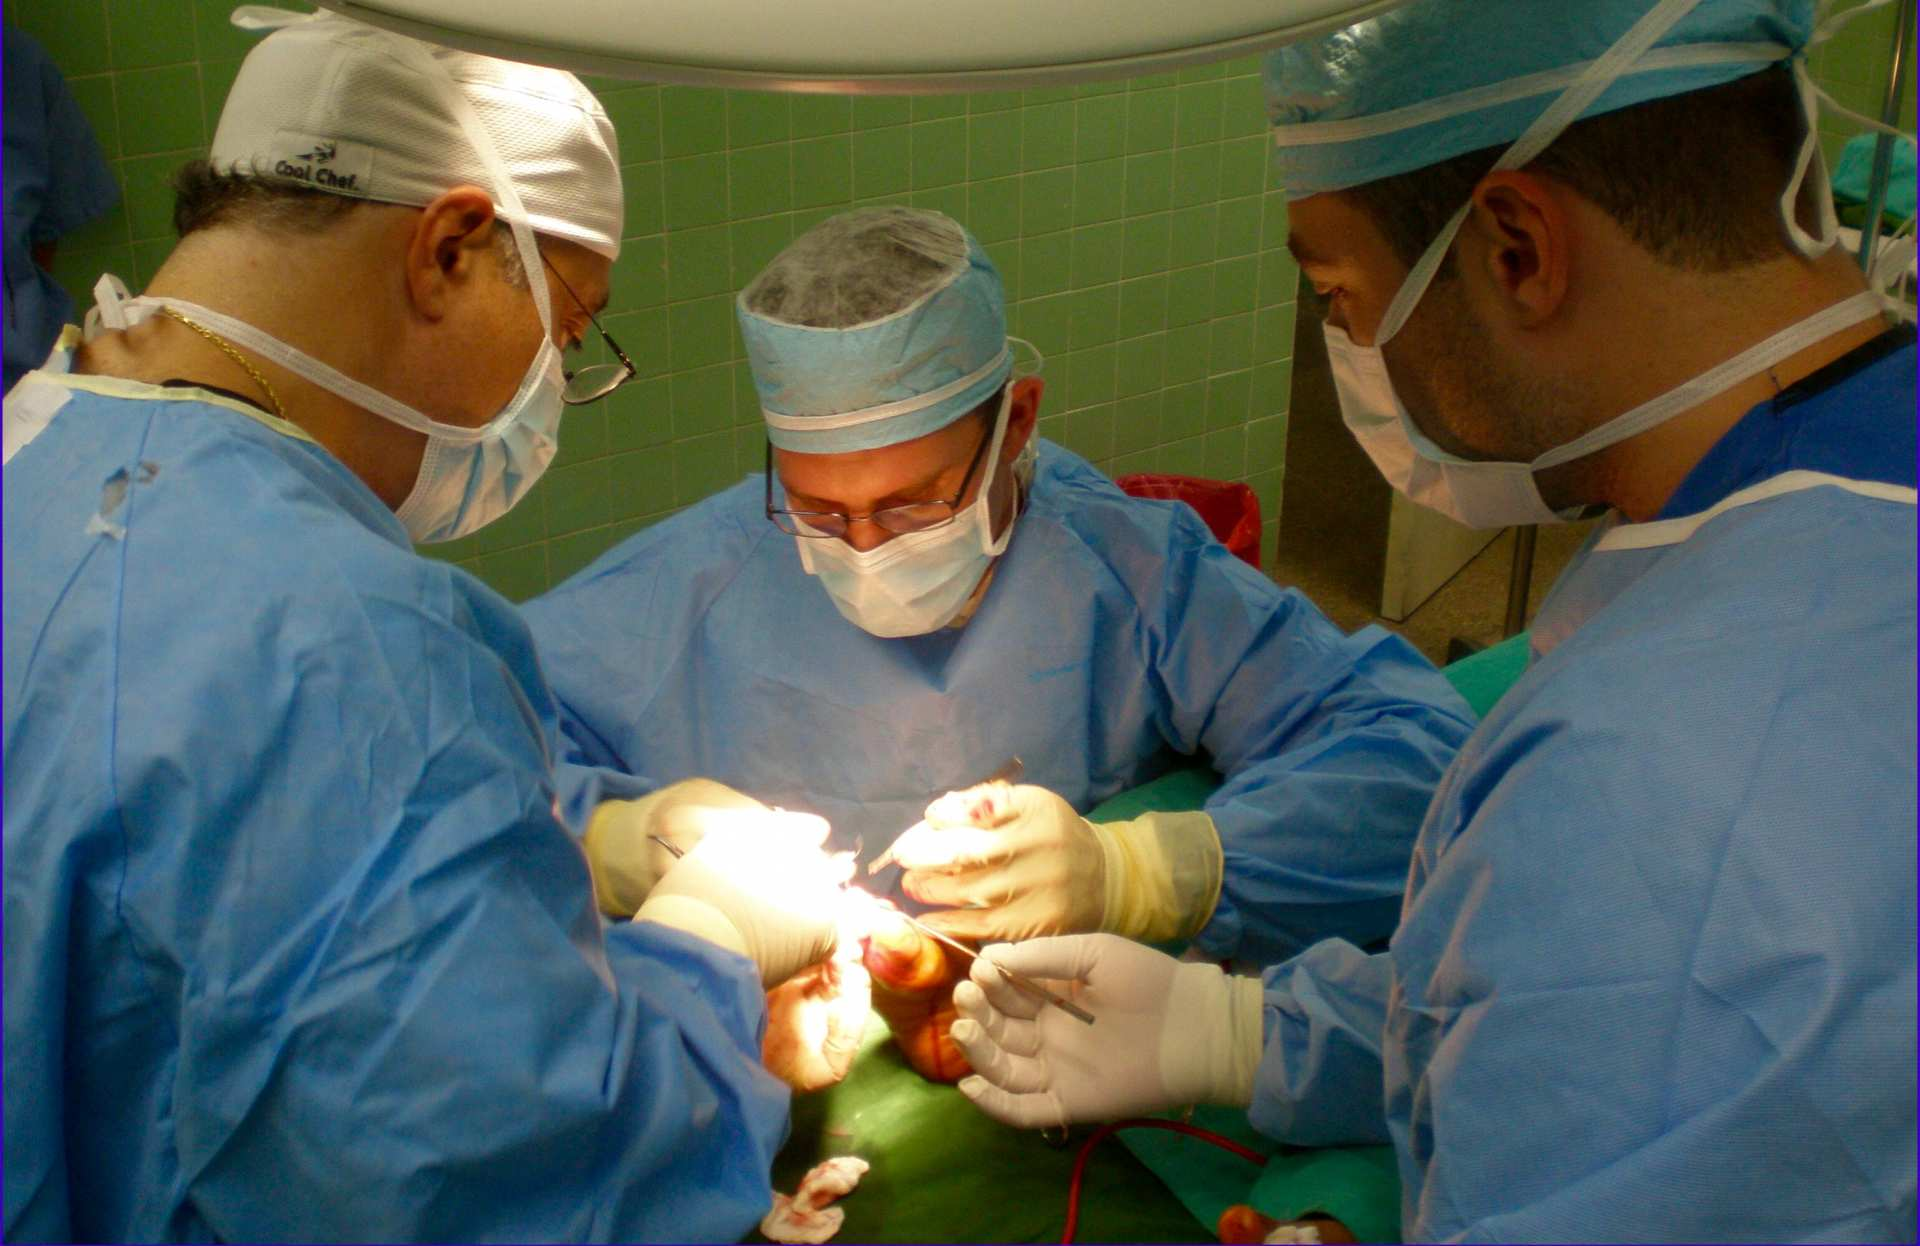 Images of Bunions